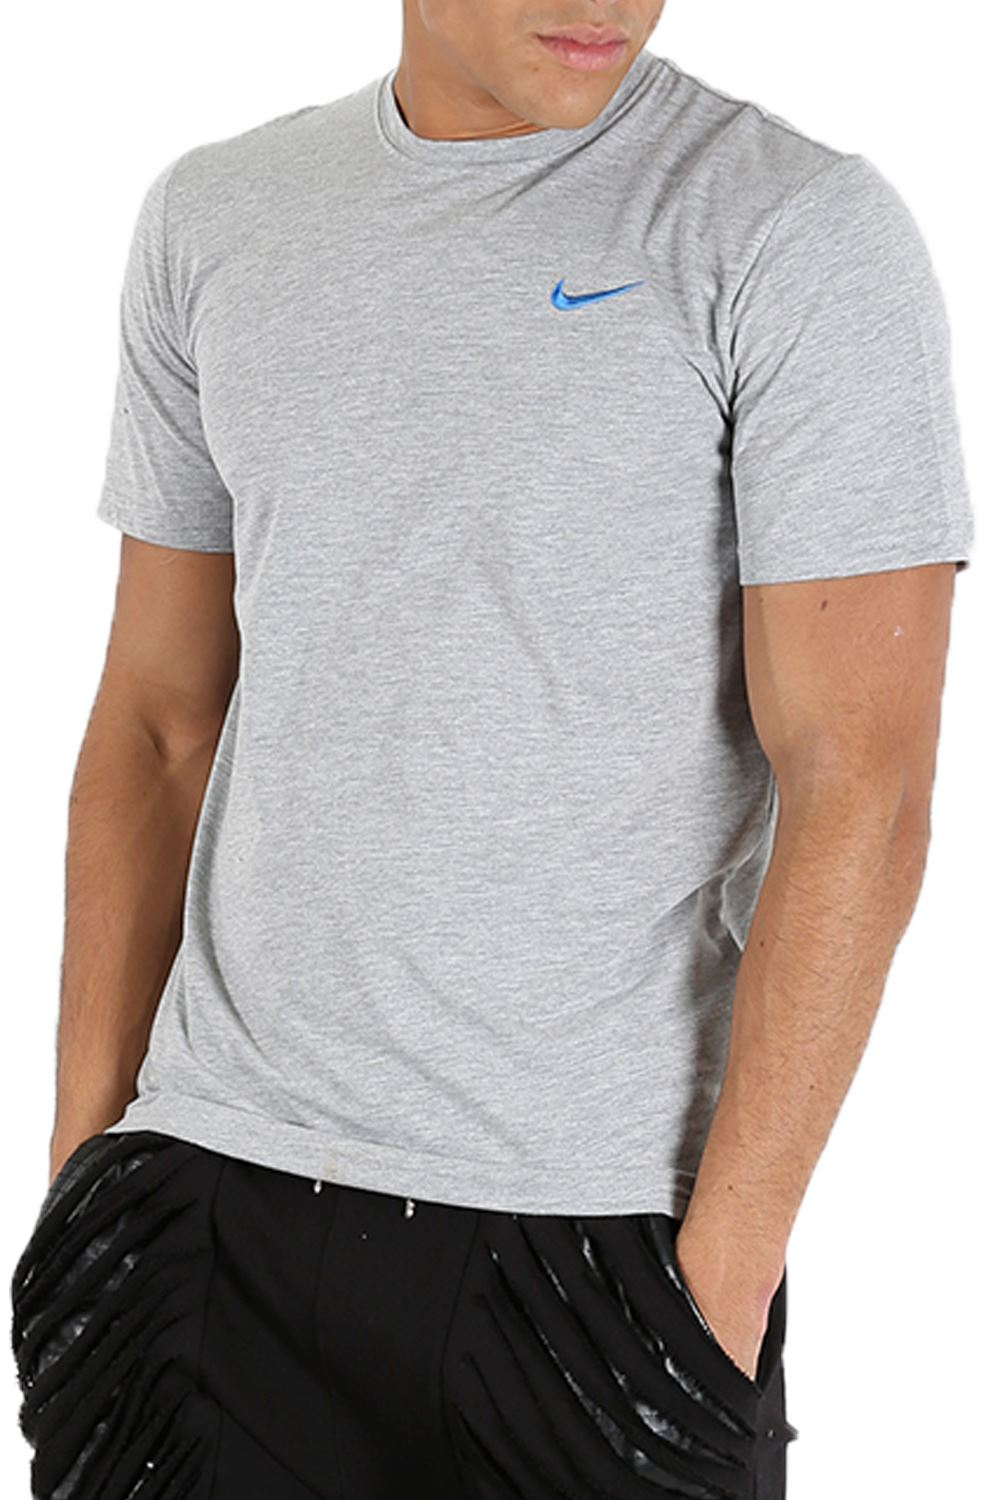 Nike mens t shirt crew neck embroidered swoosh logo short for Mens crew neck tee shirts